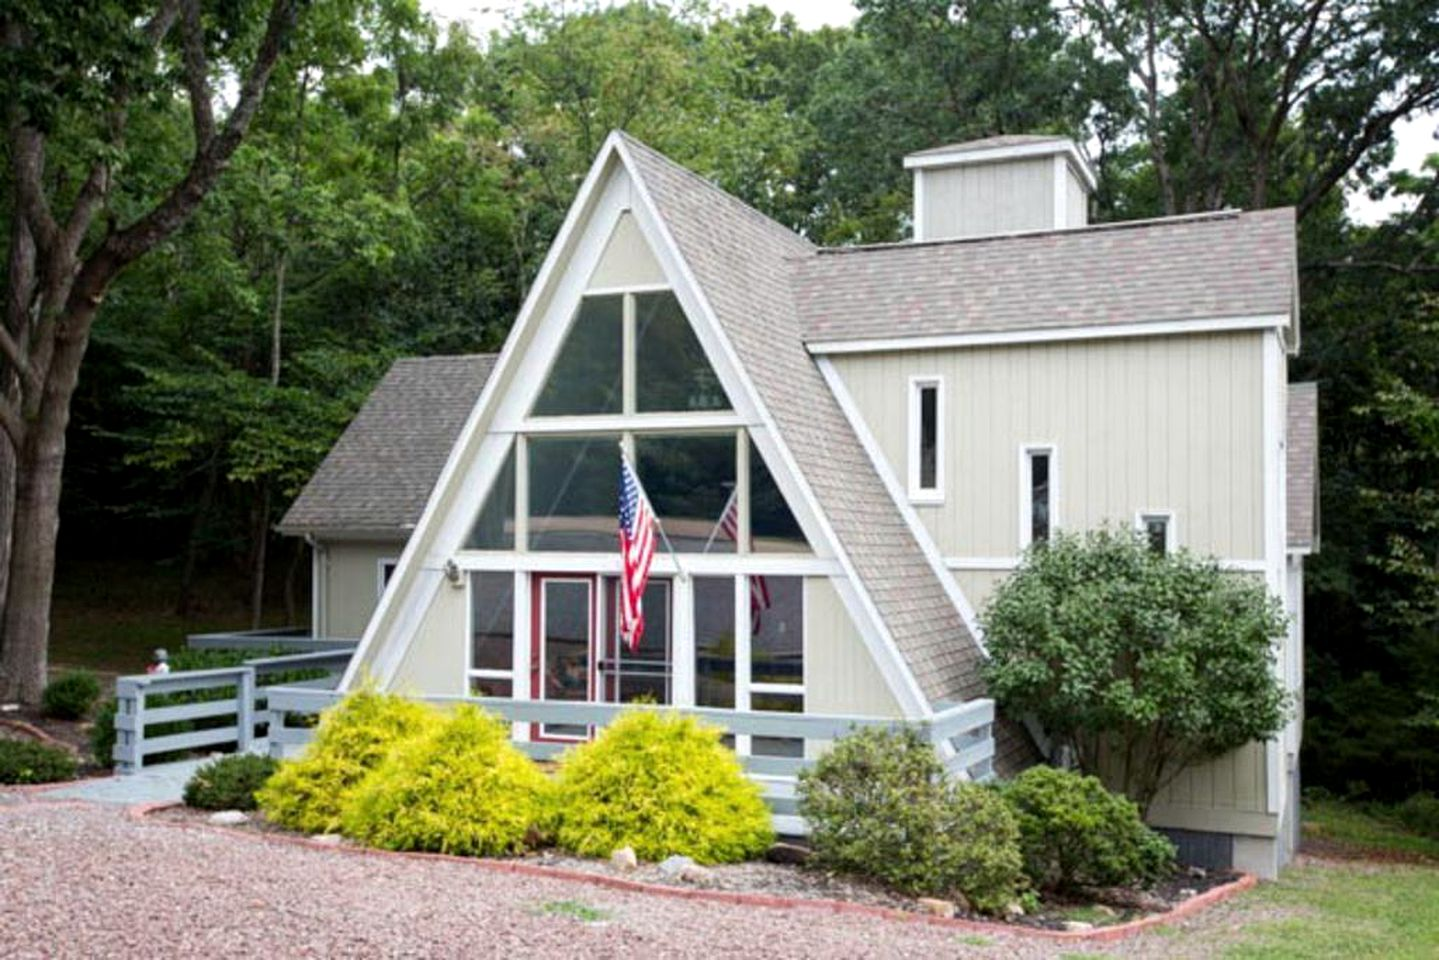 A-frame cabin rental with stone driveway and American flag hanging outside in Massanutten, Virginia.